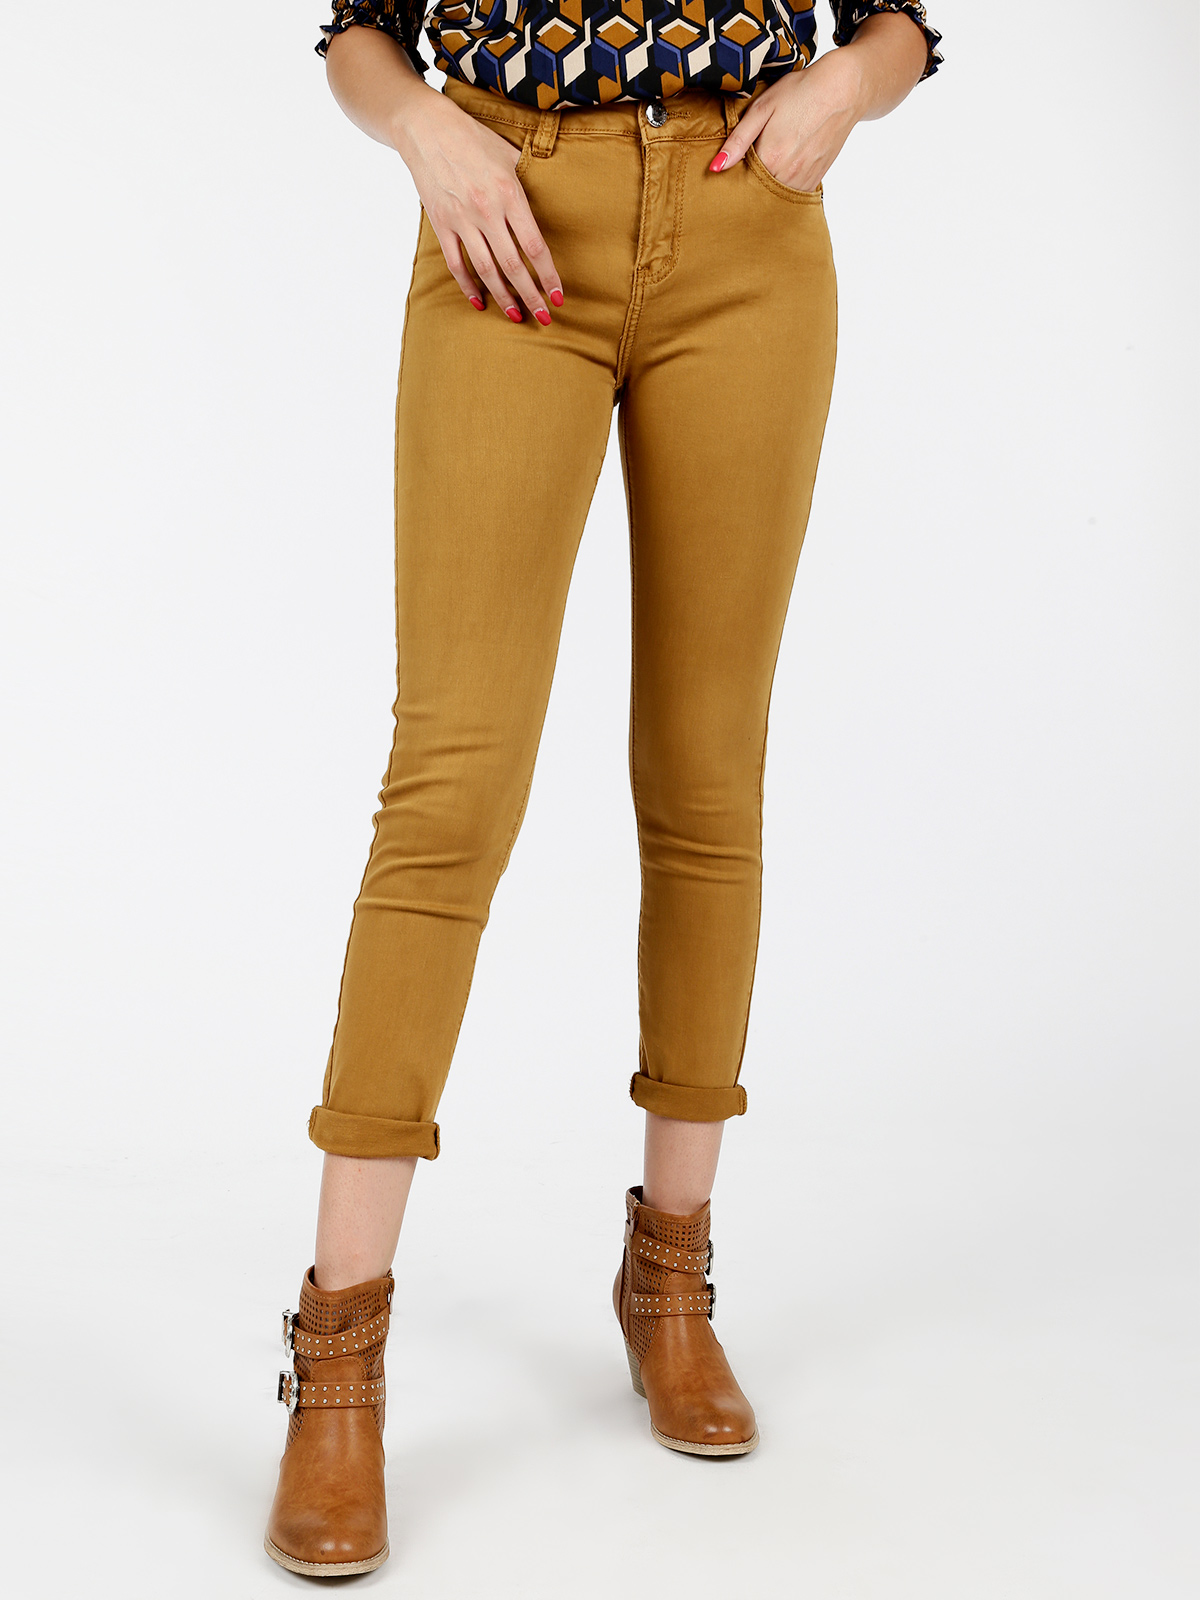 Cotton Pants Women